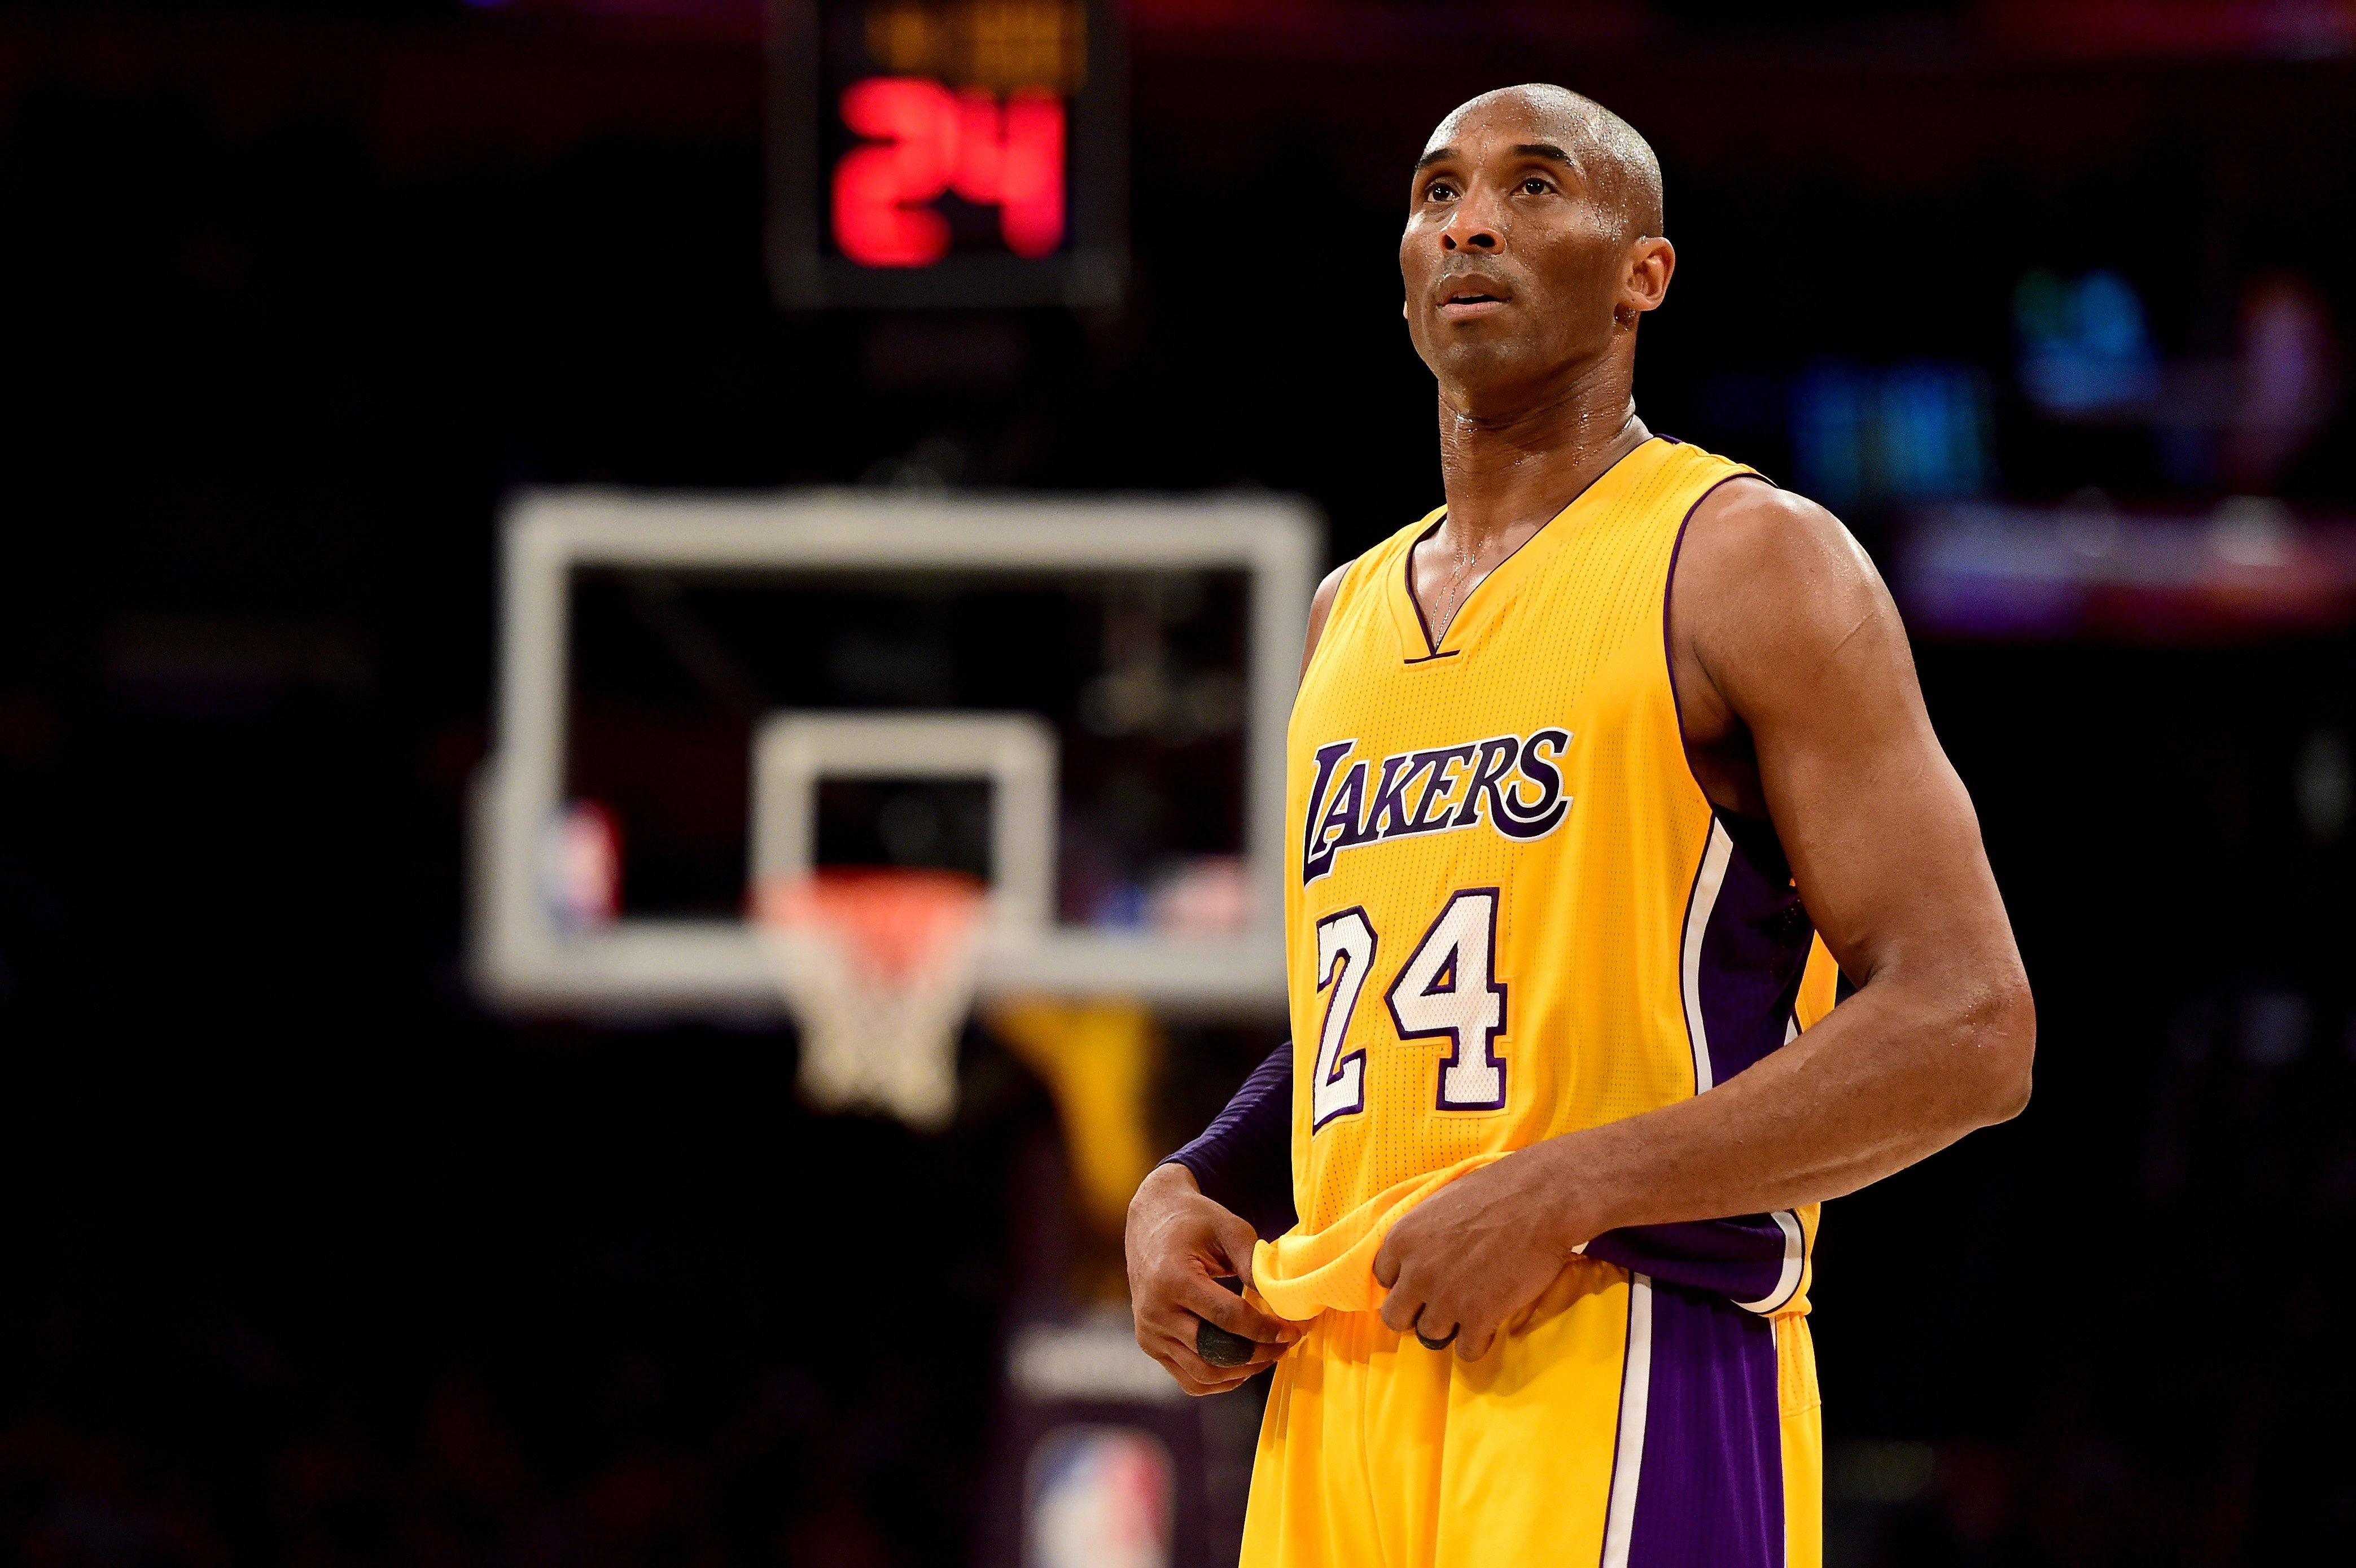 Kobe Bryant #24 of the Los Angeles Lakers reacts while taking on the Utah Jazz at Staples Center on April 13, 2016   Photo: GettyImages